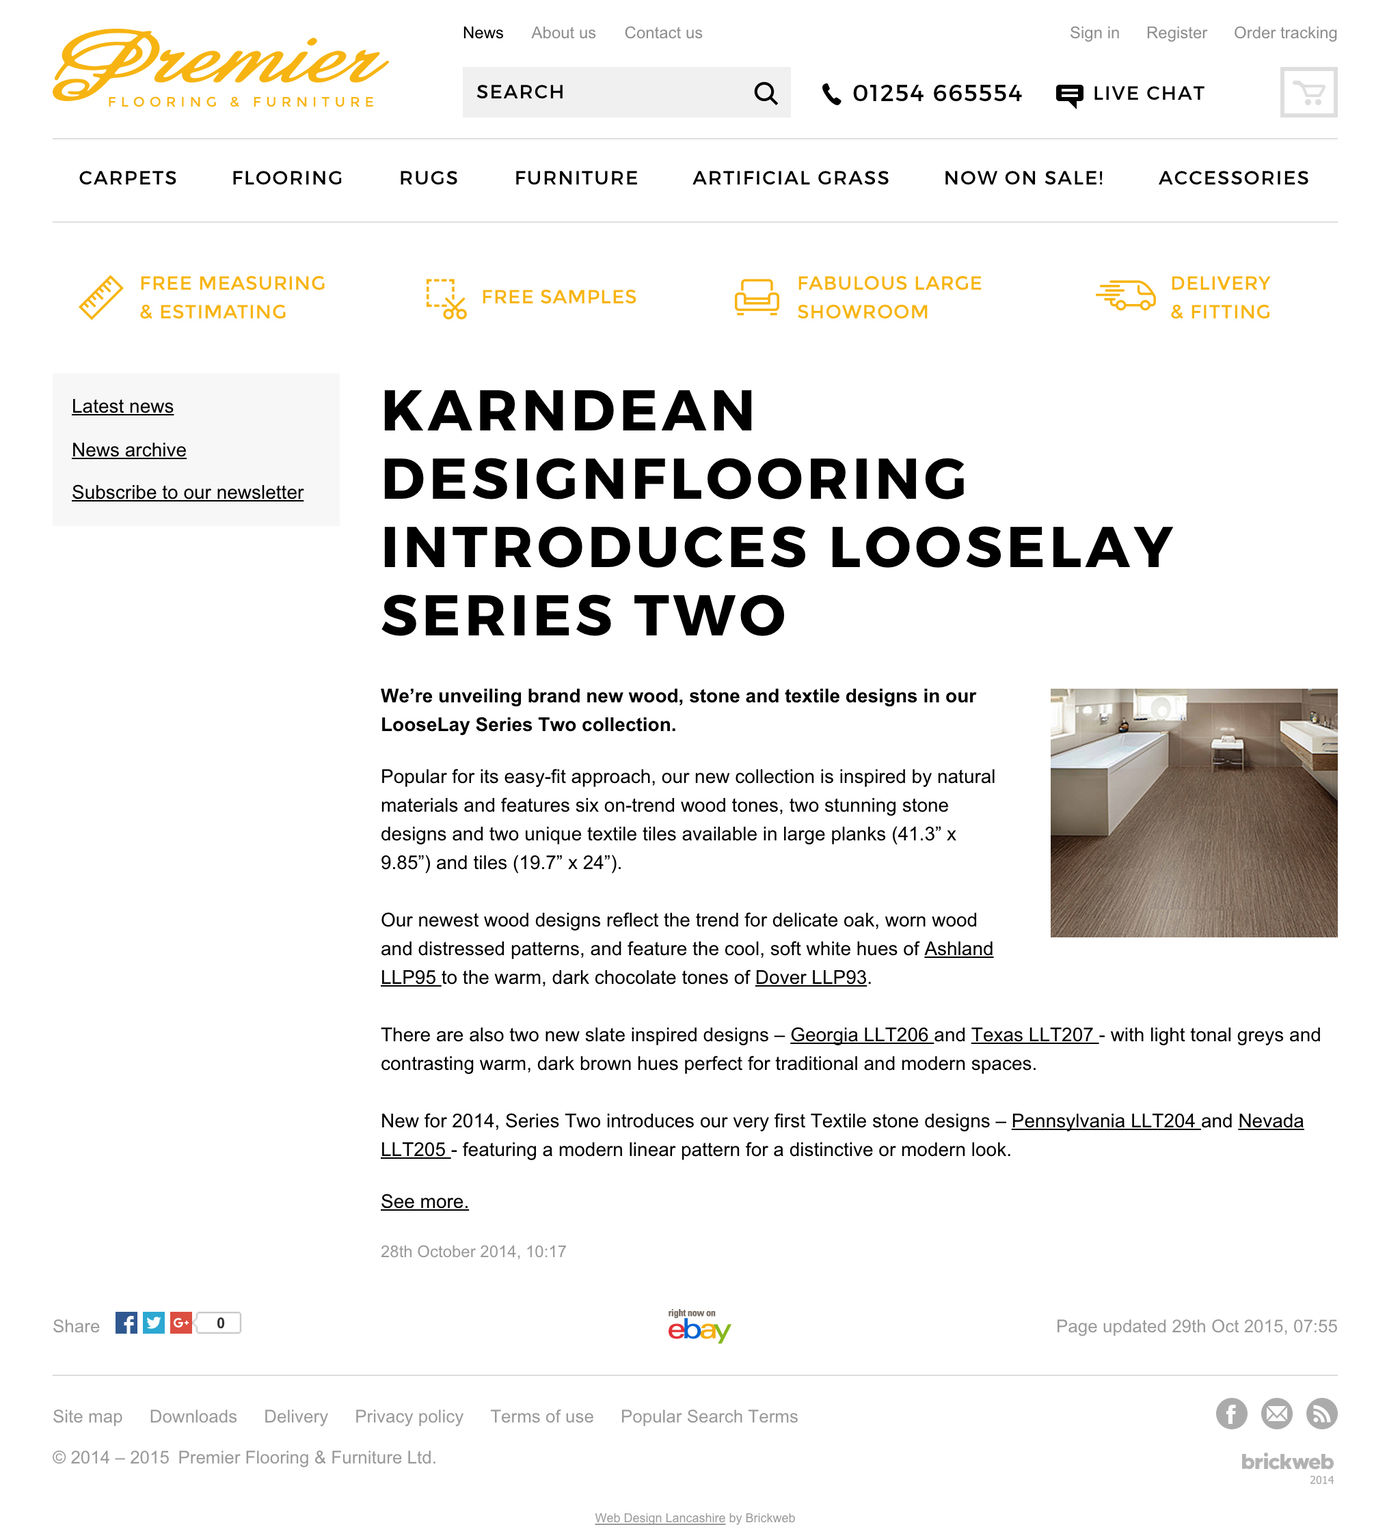 Premier Flooring & Furniture Ltd News